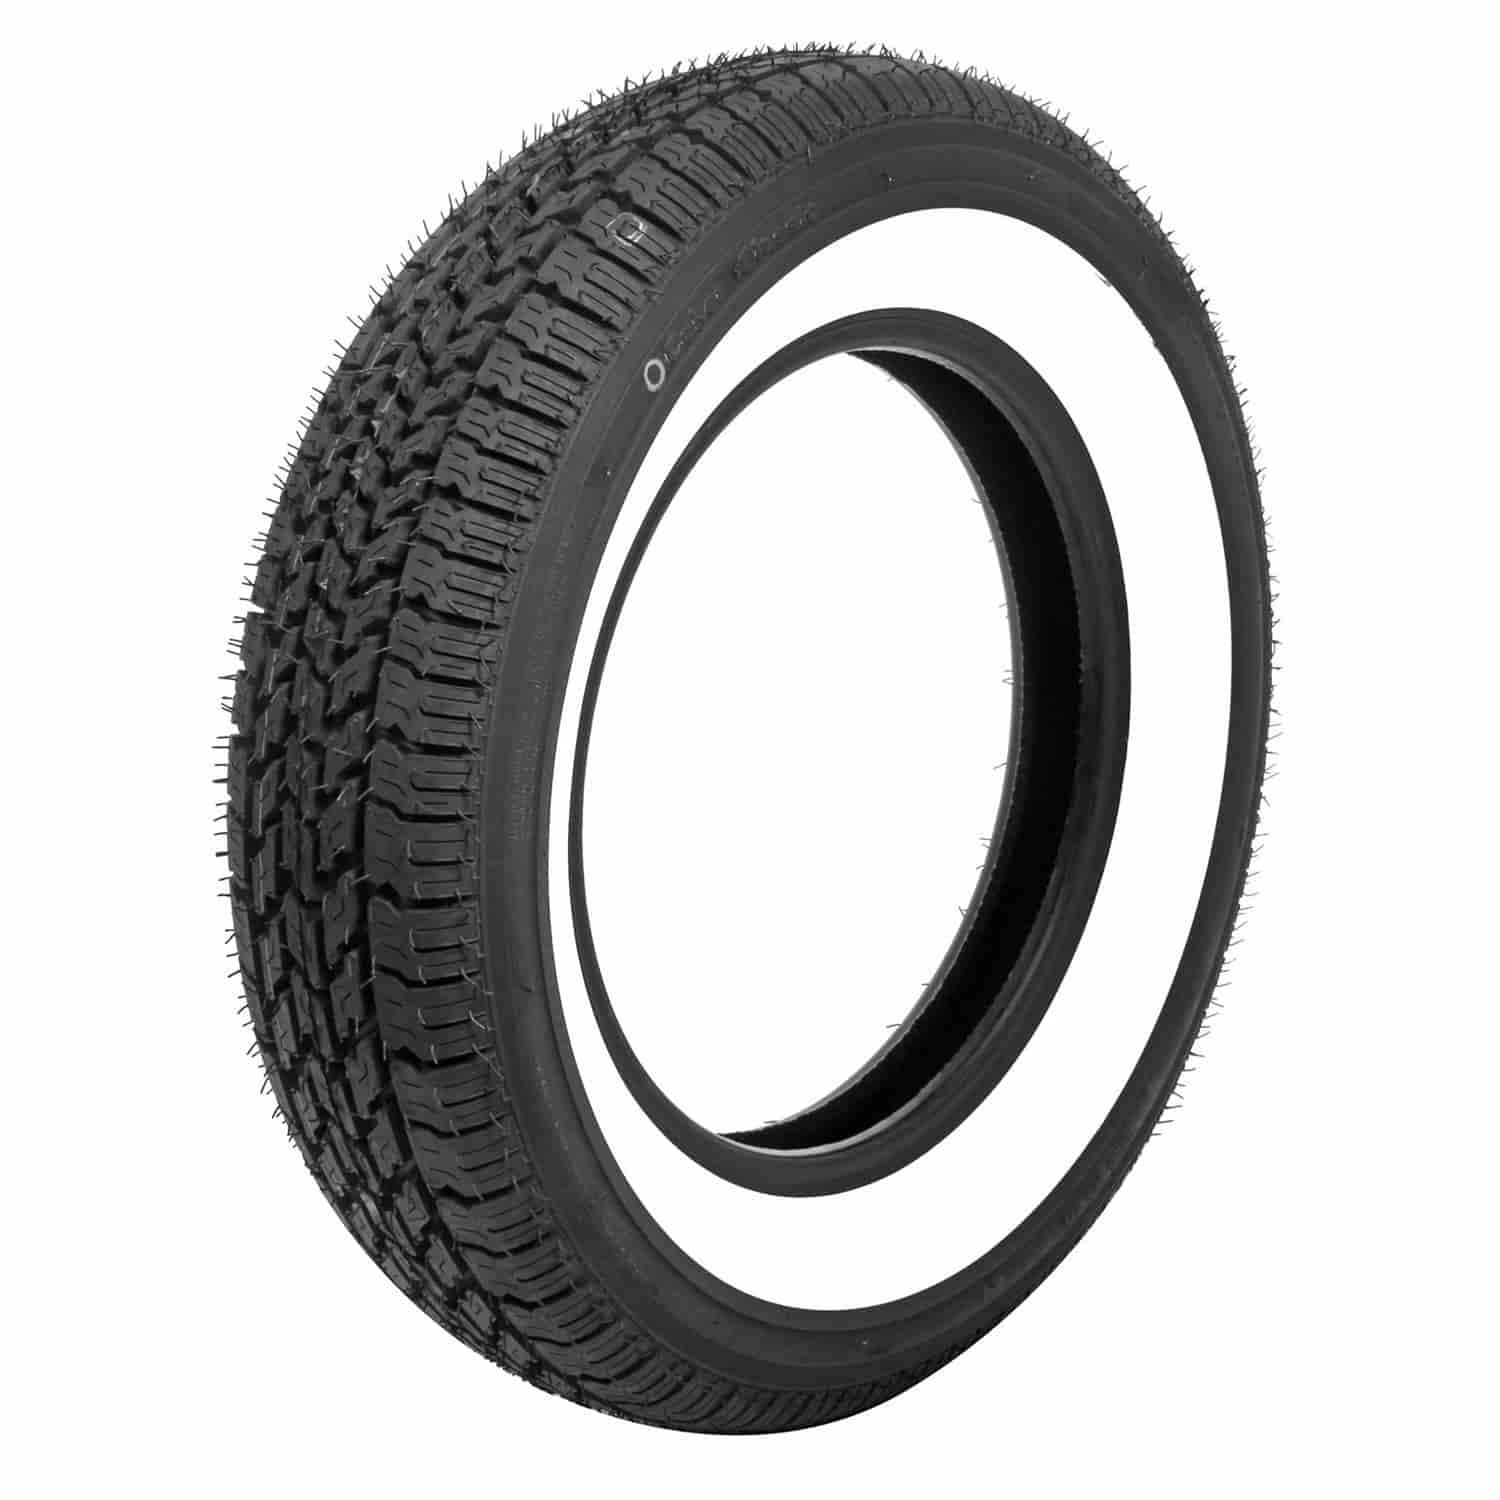 Coker Tire 568745 - Coker Classic Nostalgia Whitewall Radial Tires